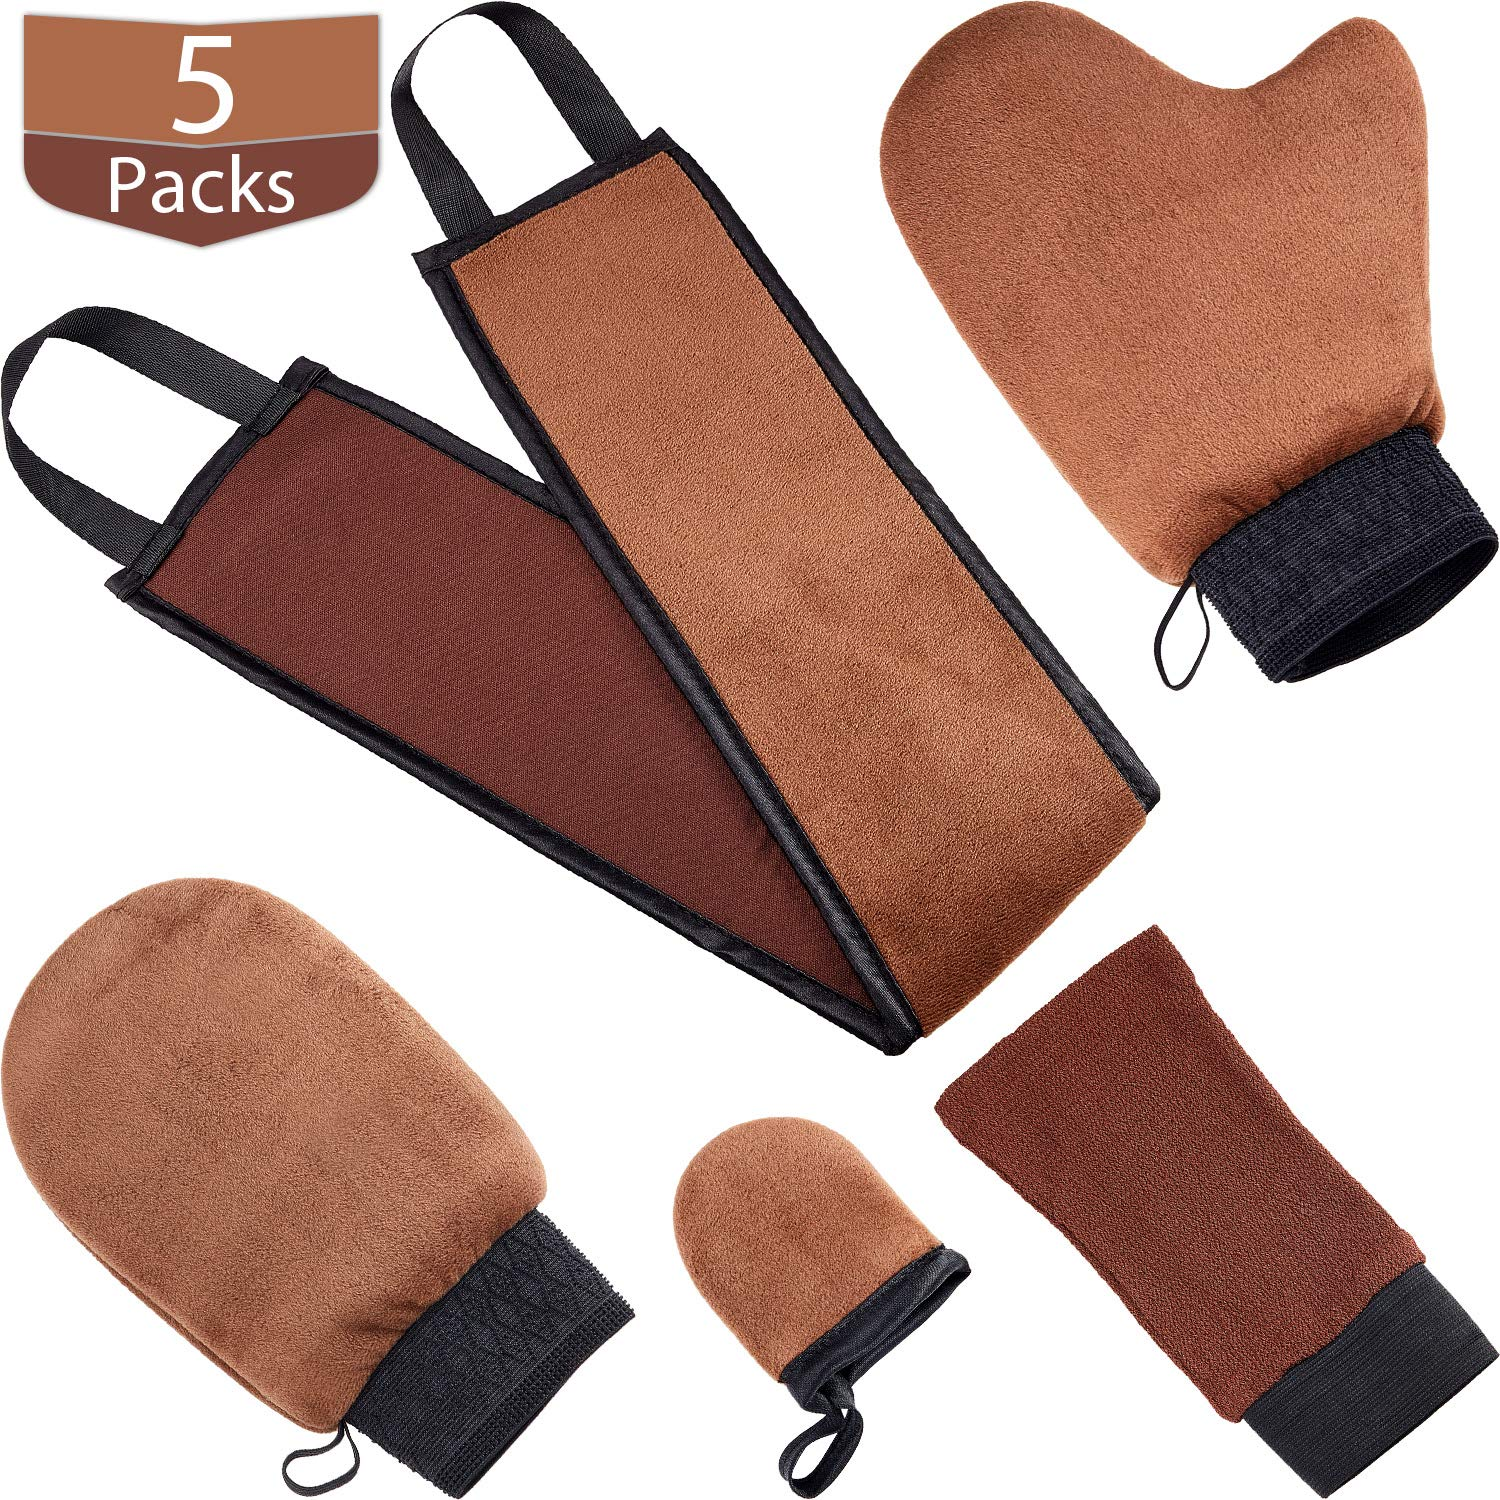 Amazon Com Tanning Mitt Applicator Tan Mitt Applicator Kit 5 In 1 With Exfoliating Glove Tanning Back Lotion Applicators For Back Face Mitt And 2 Kinds Of Gloves Tanner Mitt Tools Brown Beauty